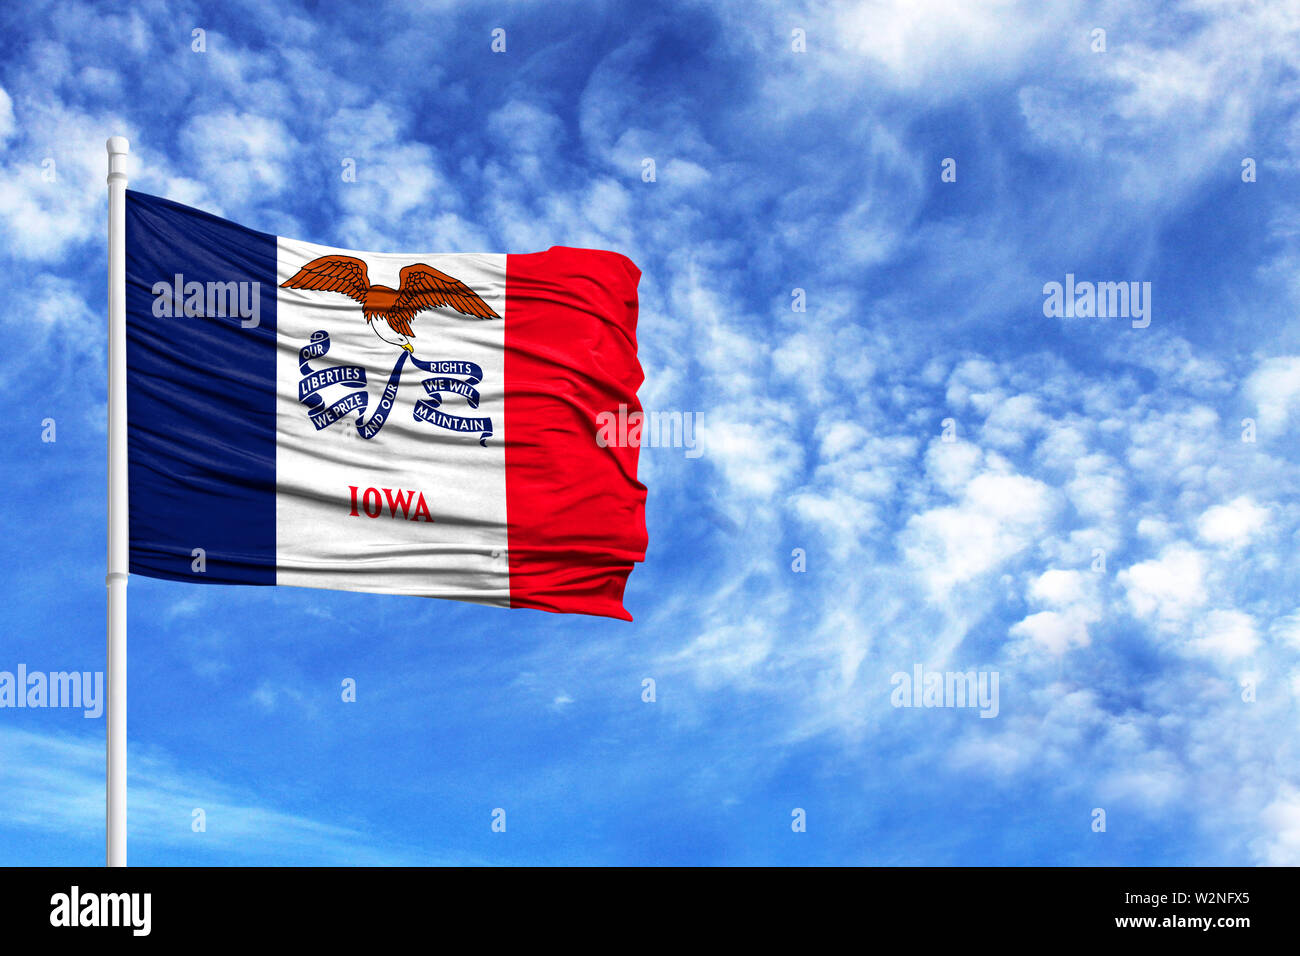 National flag State of Iowa on a flagpole in front of blue sky - Stock Image